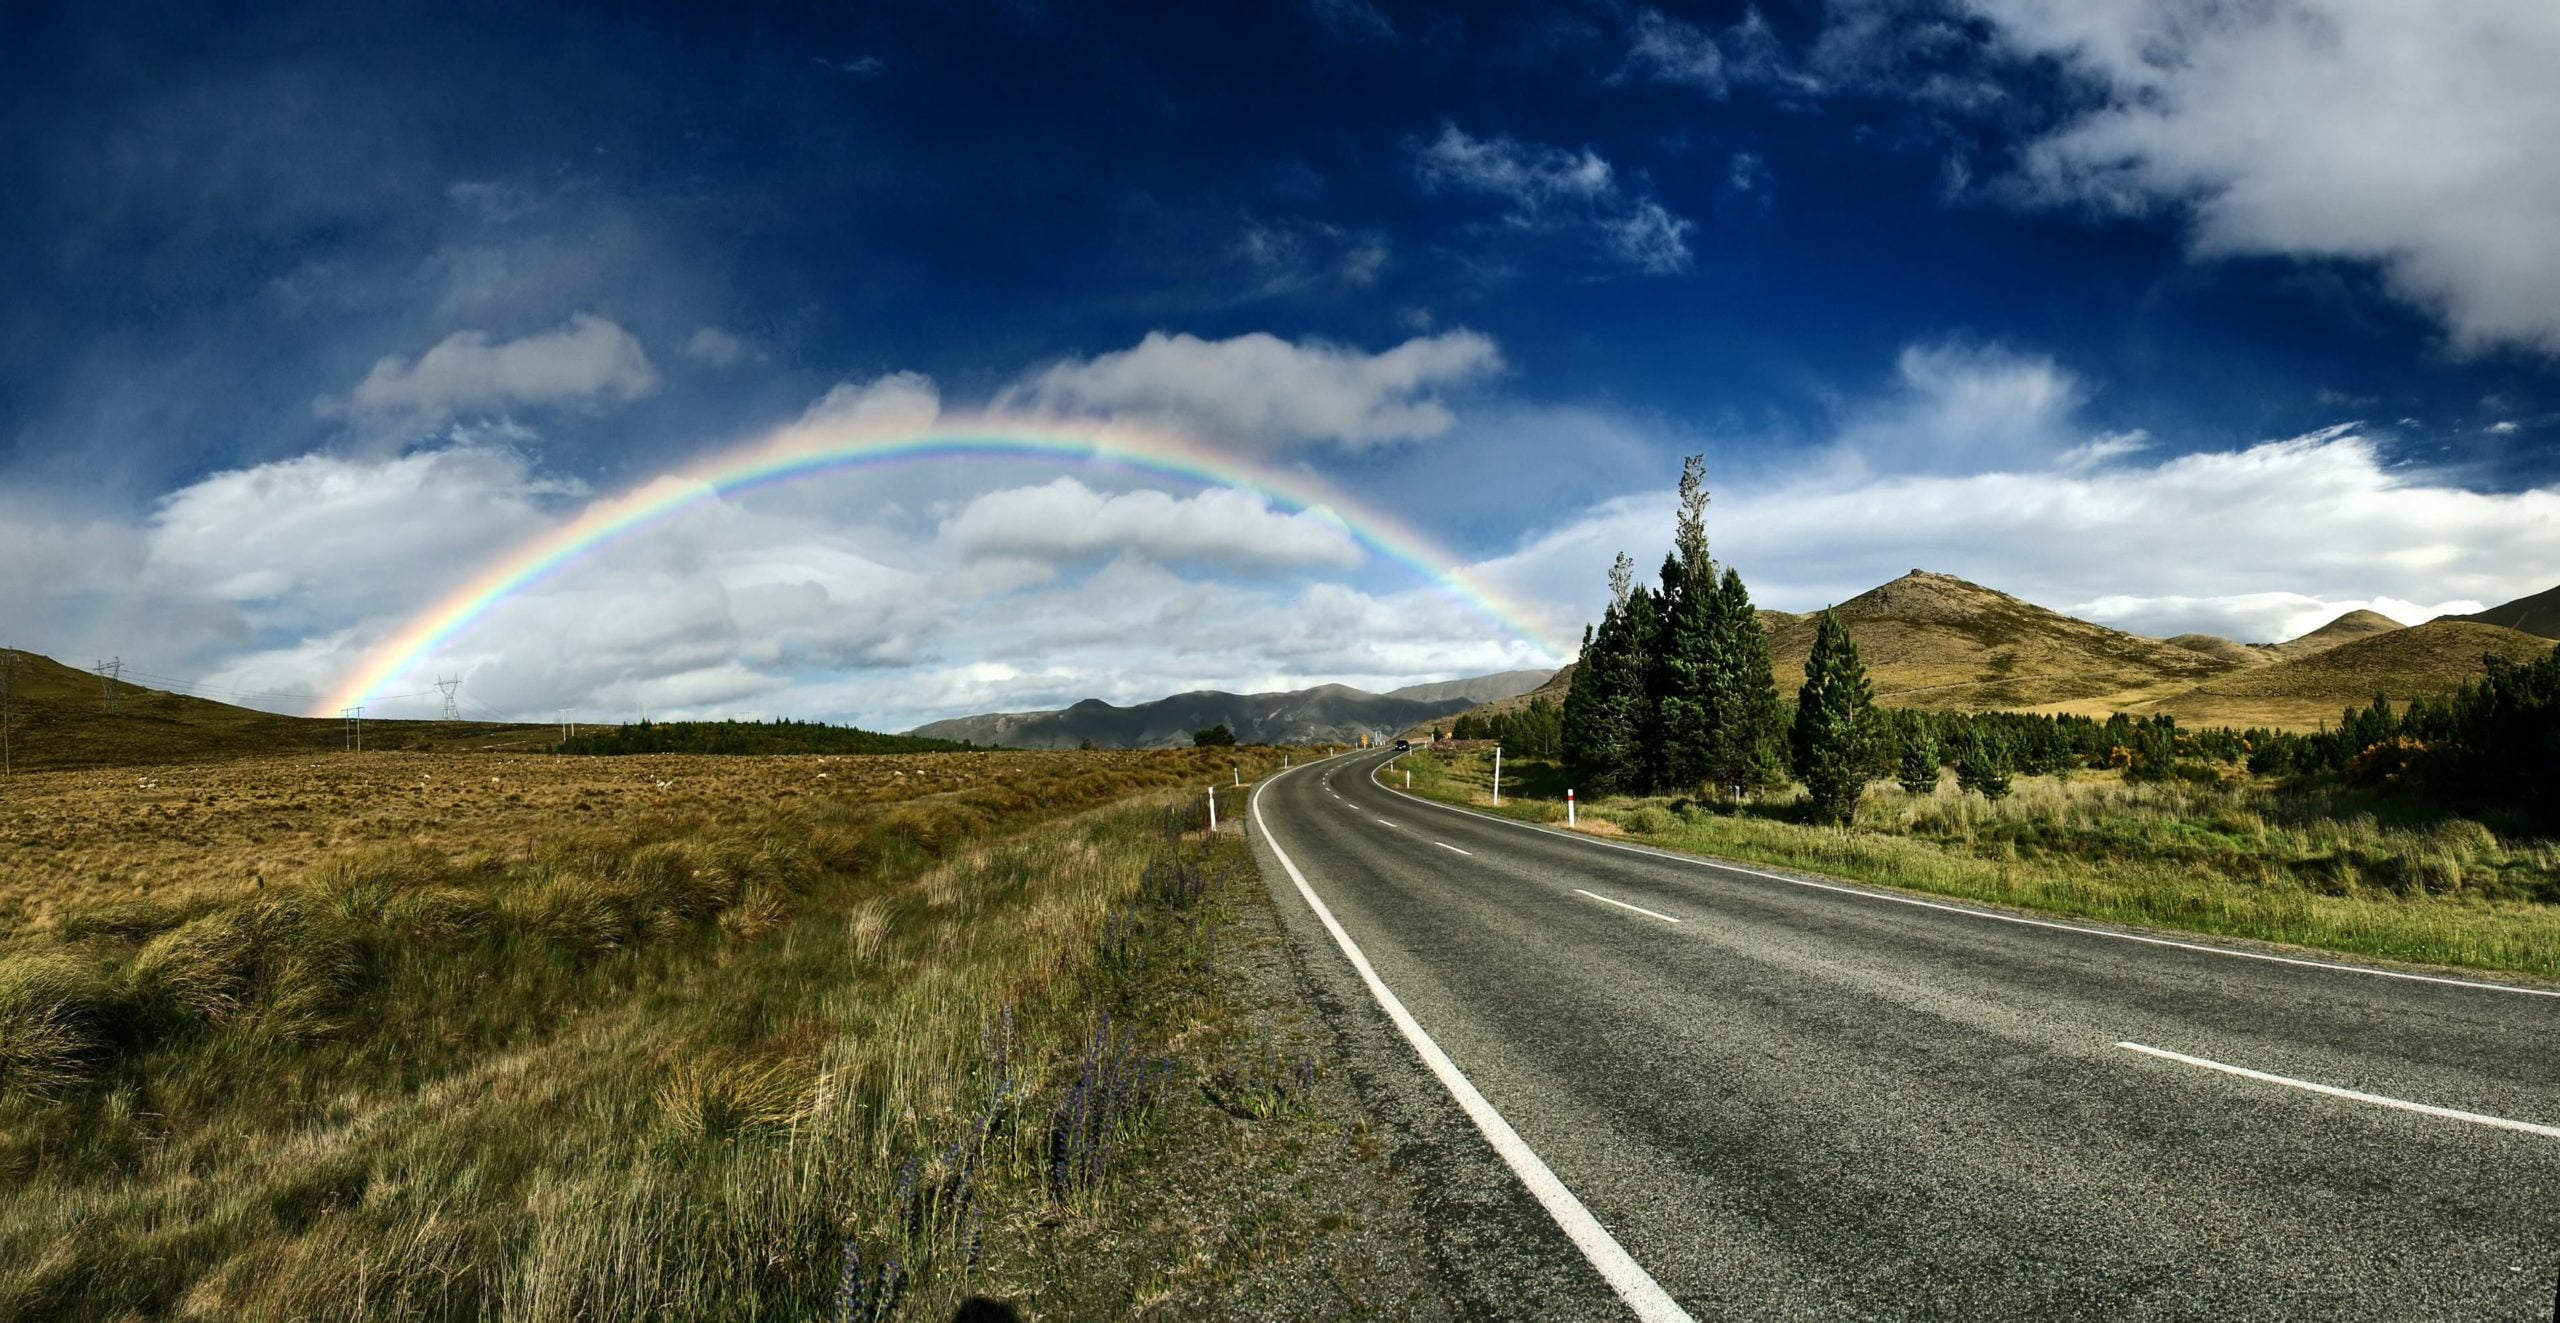 rainbow on the road of land 1 1 scaled 一個人的彩虹|伊娃詩選